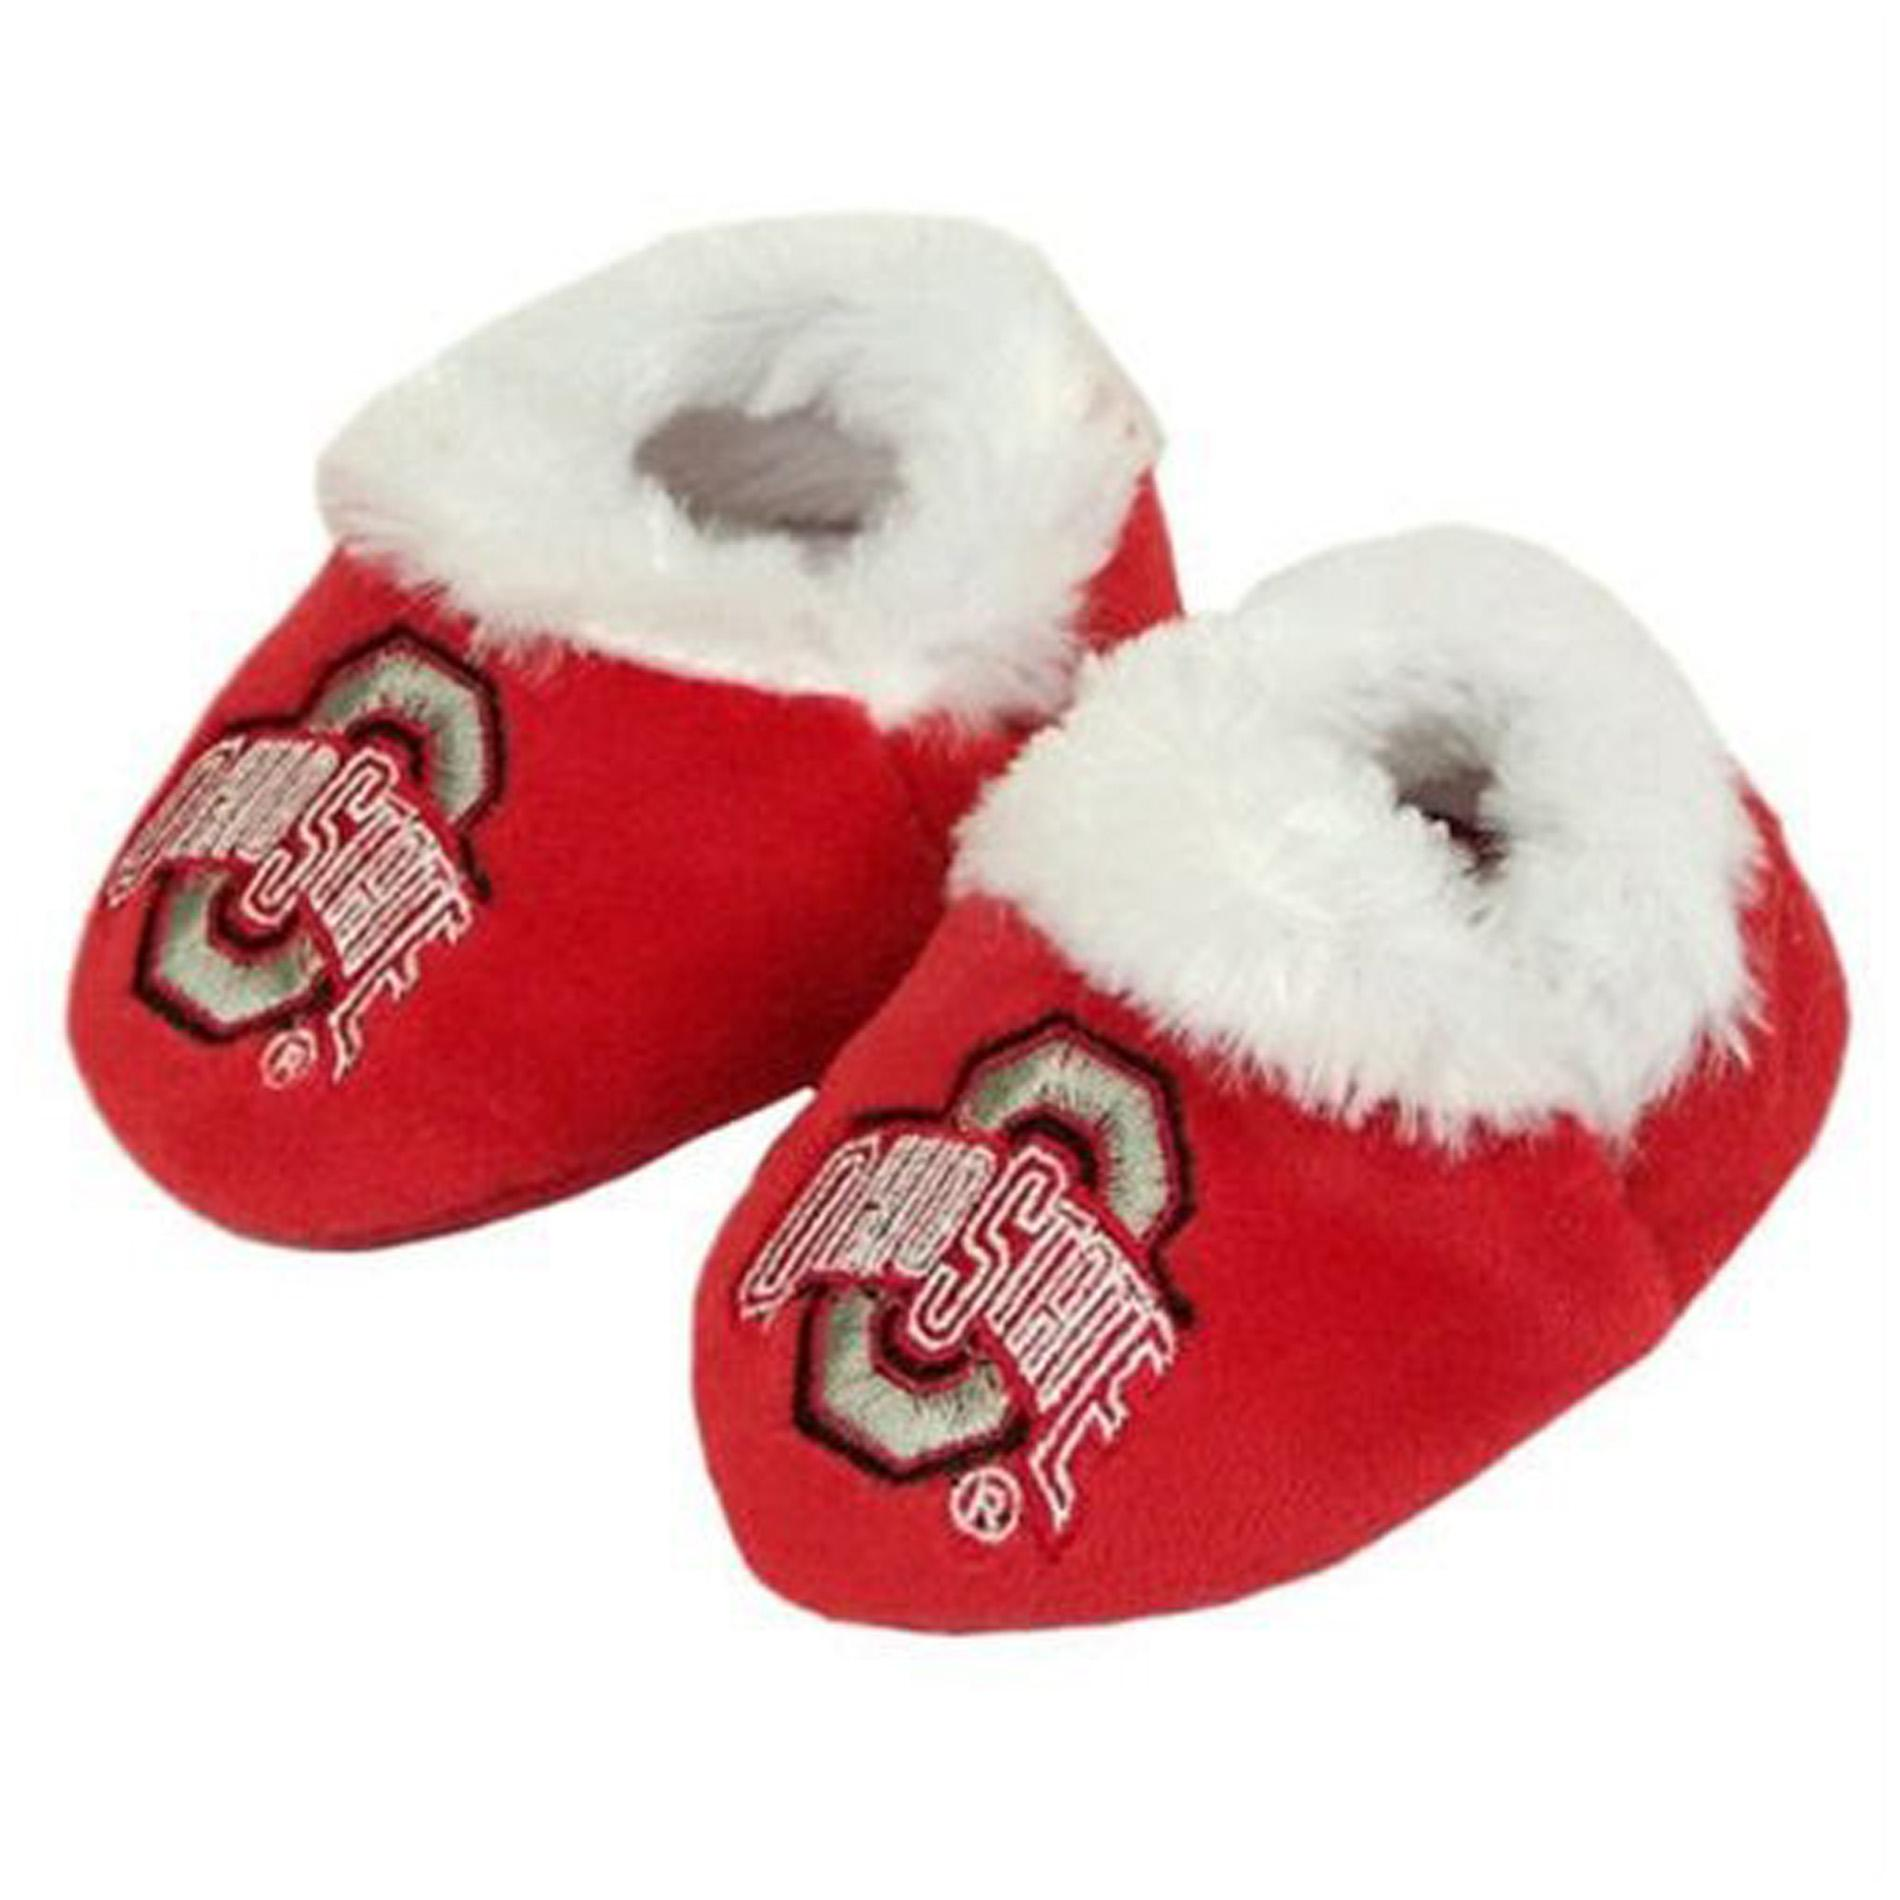 Ohio State Buckeyes Baby Bootie Slippers